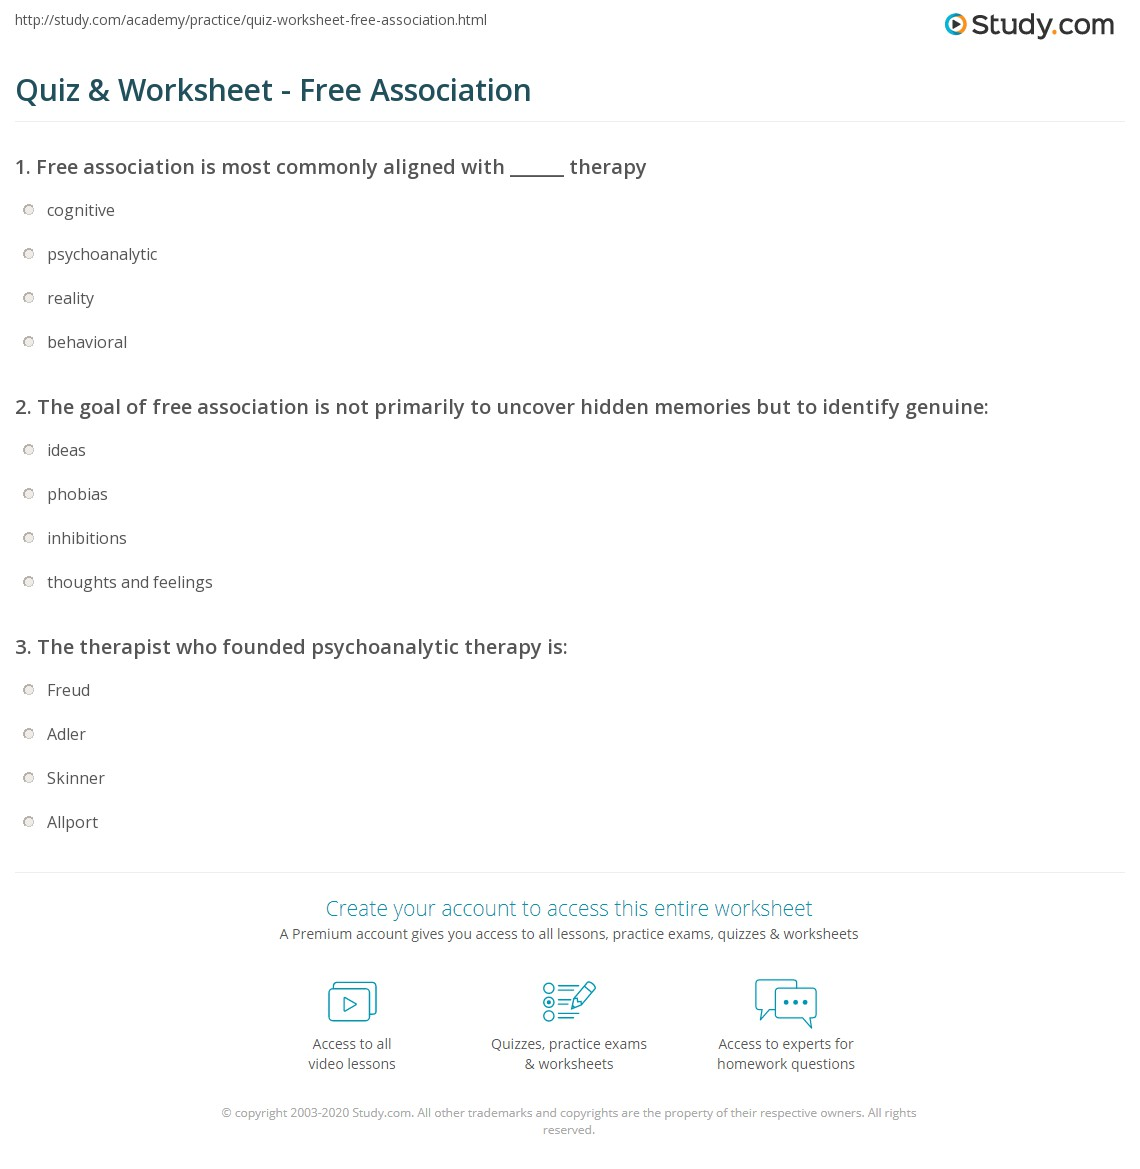 Quiz & Worksheet - Free Association | Study.com